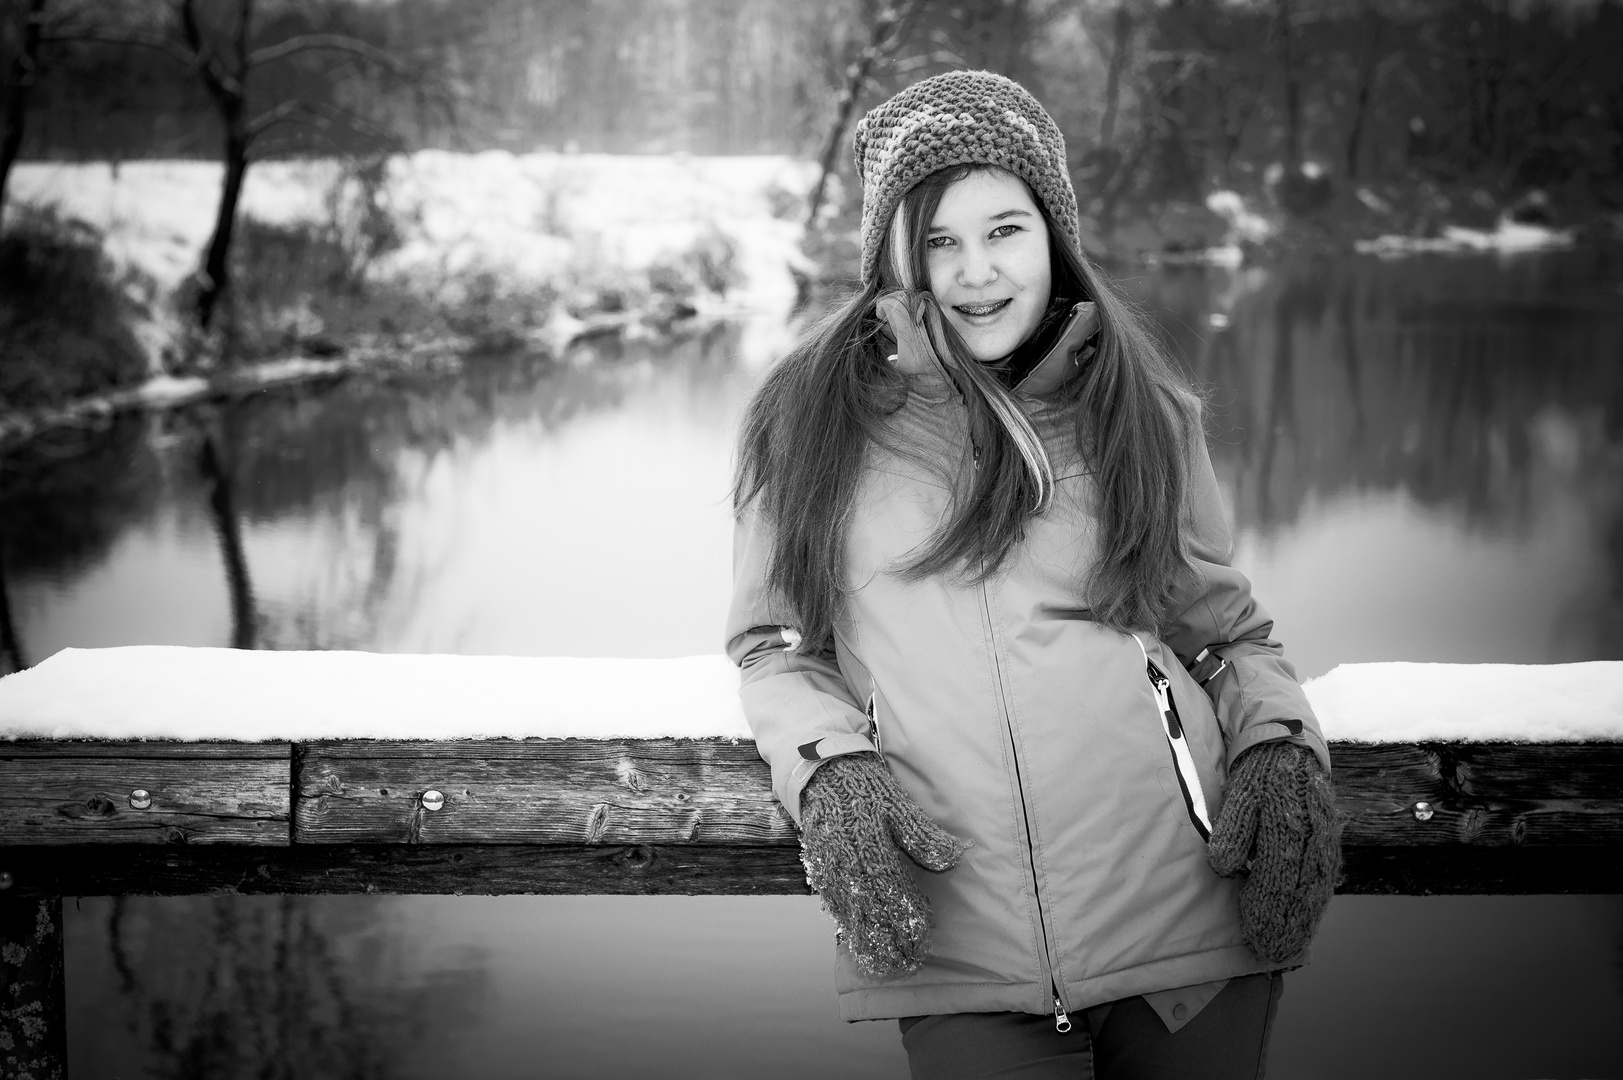 Wintershooting